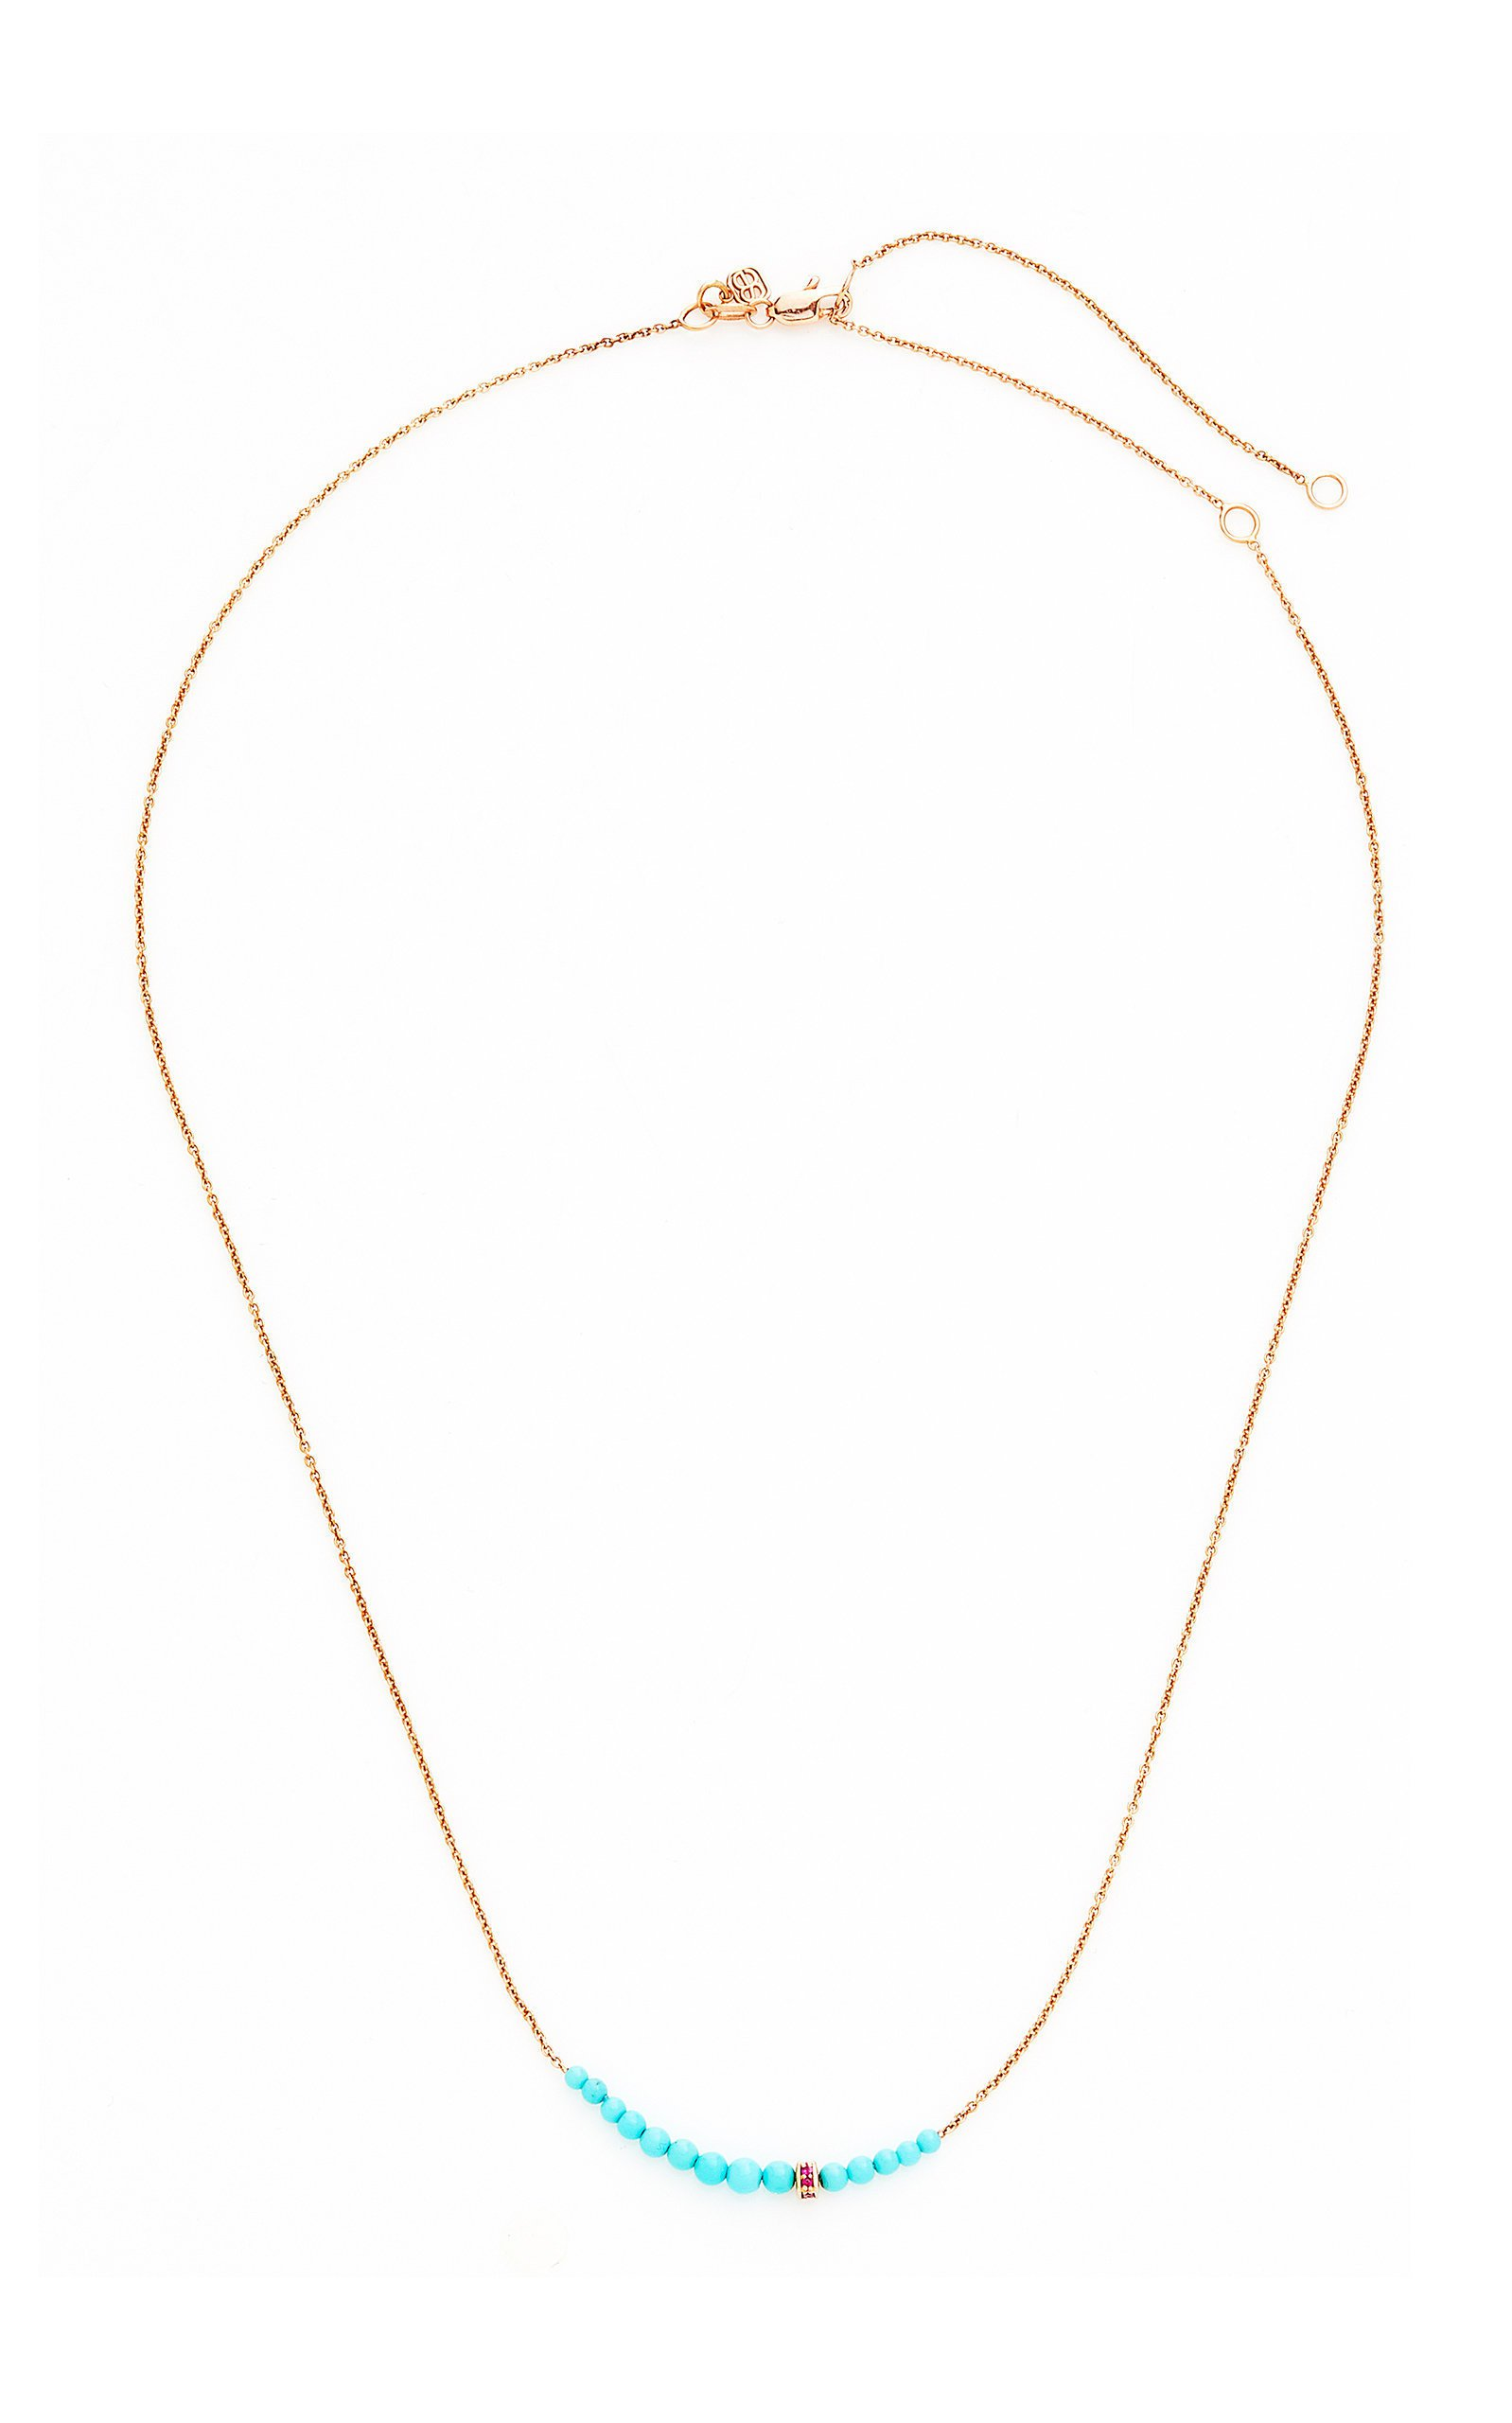 Sydney Evan Turquoise Graduated Necklace